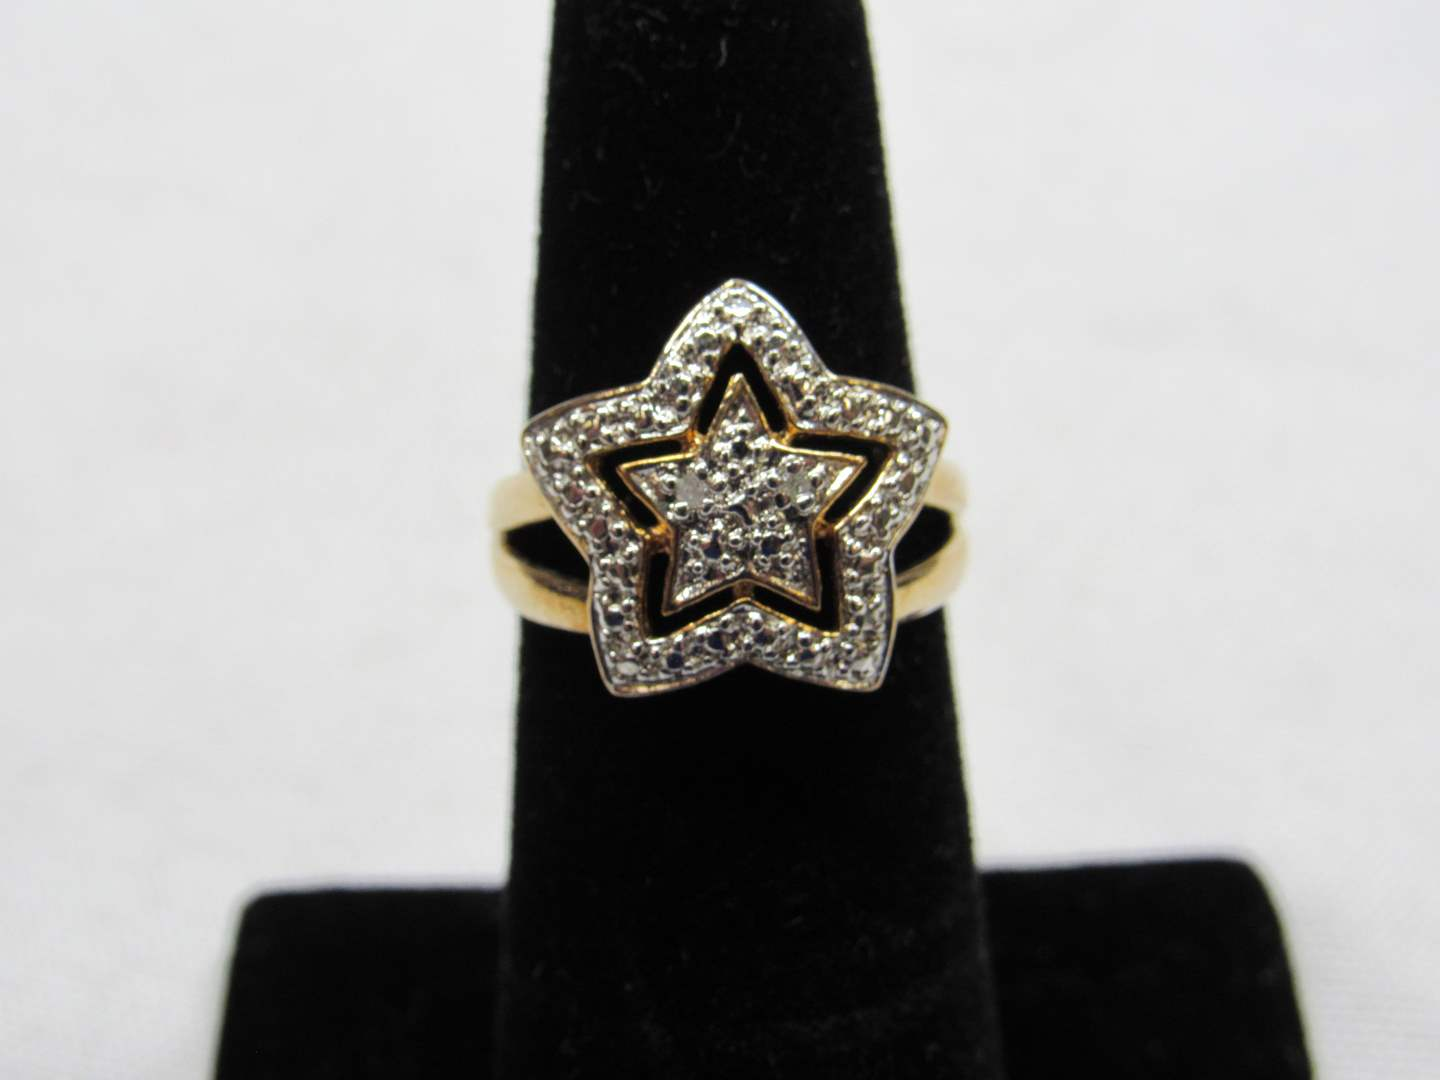 Lot # 197 Gold over sterling silver star ring size 5 (main image)